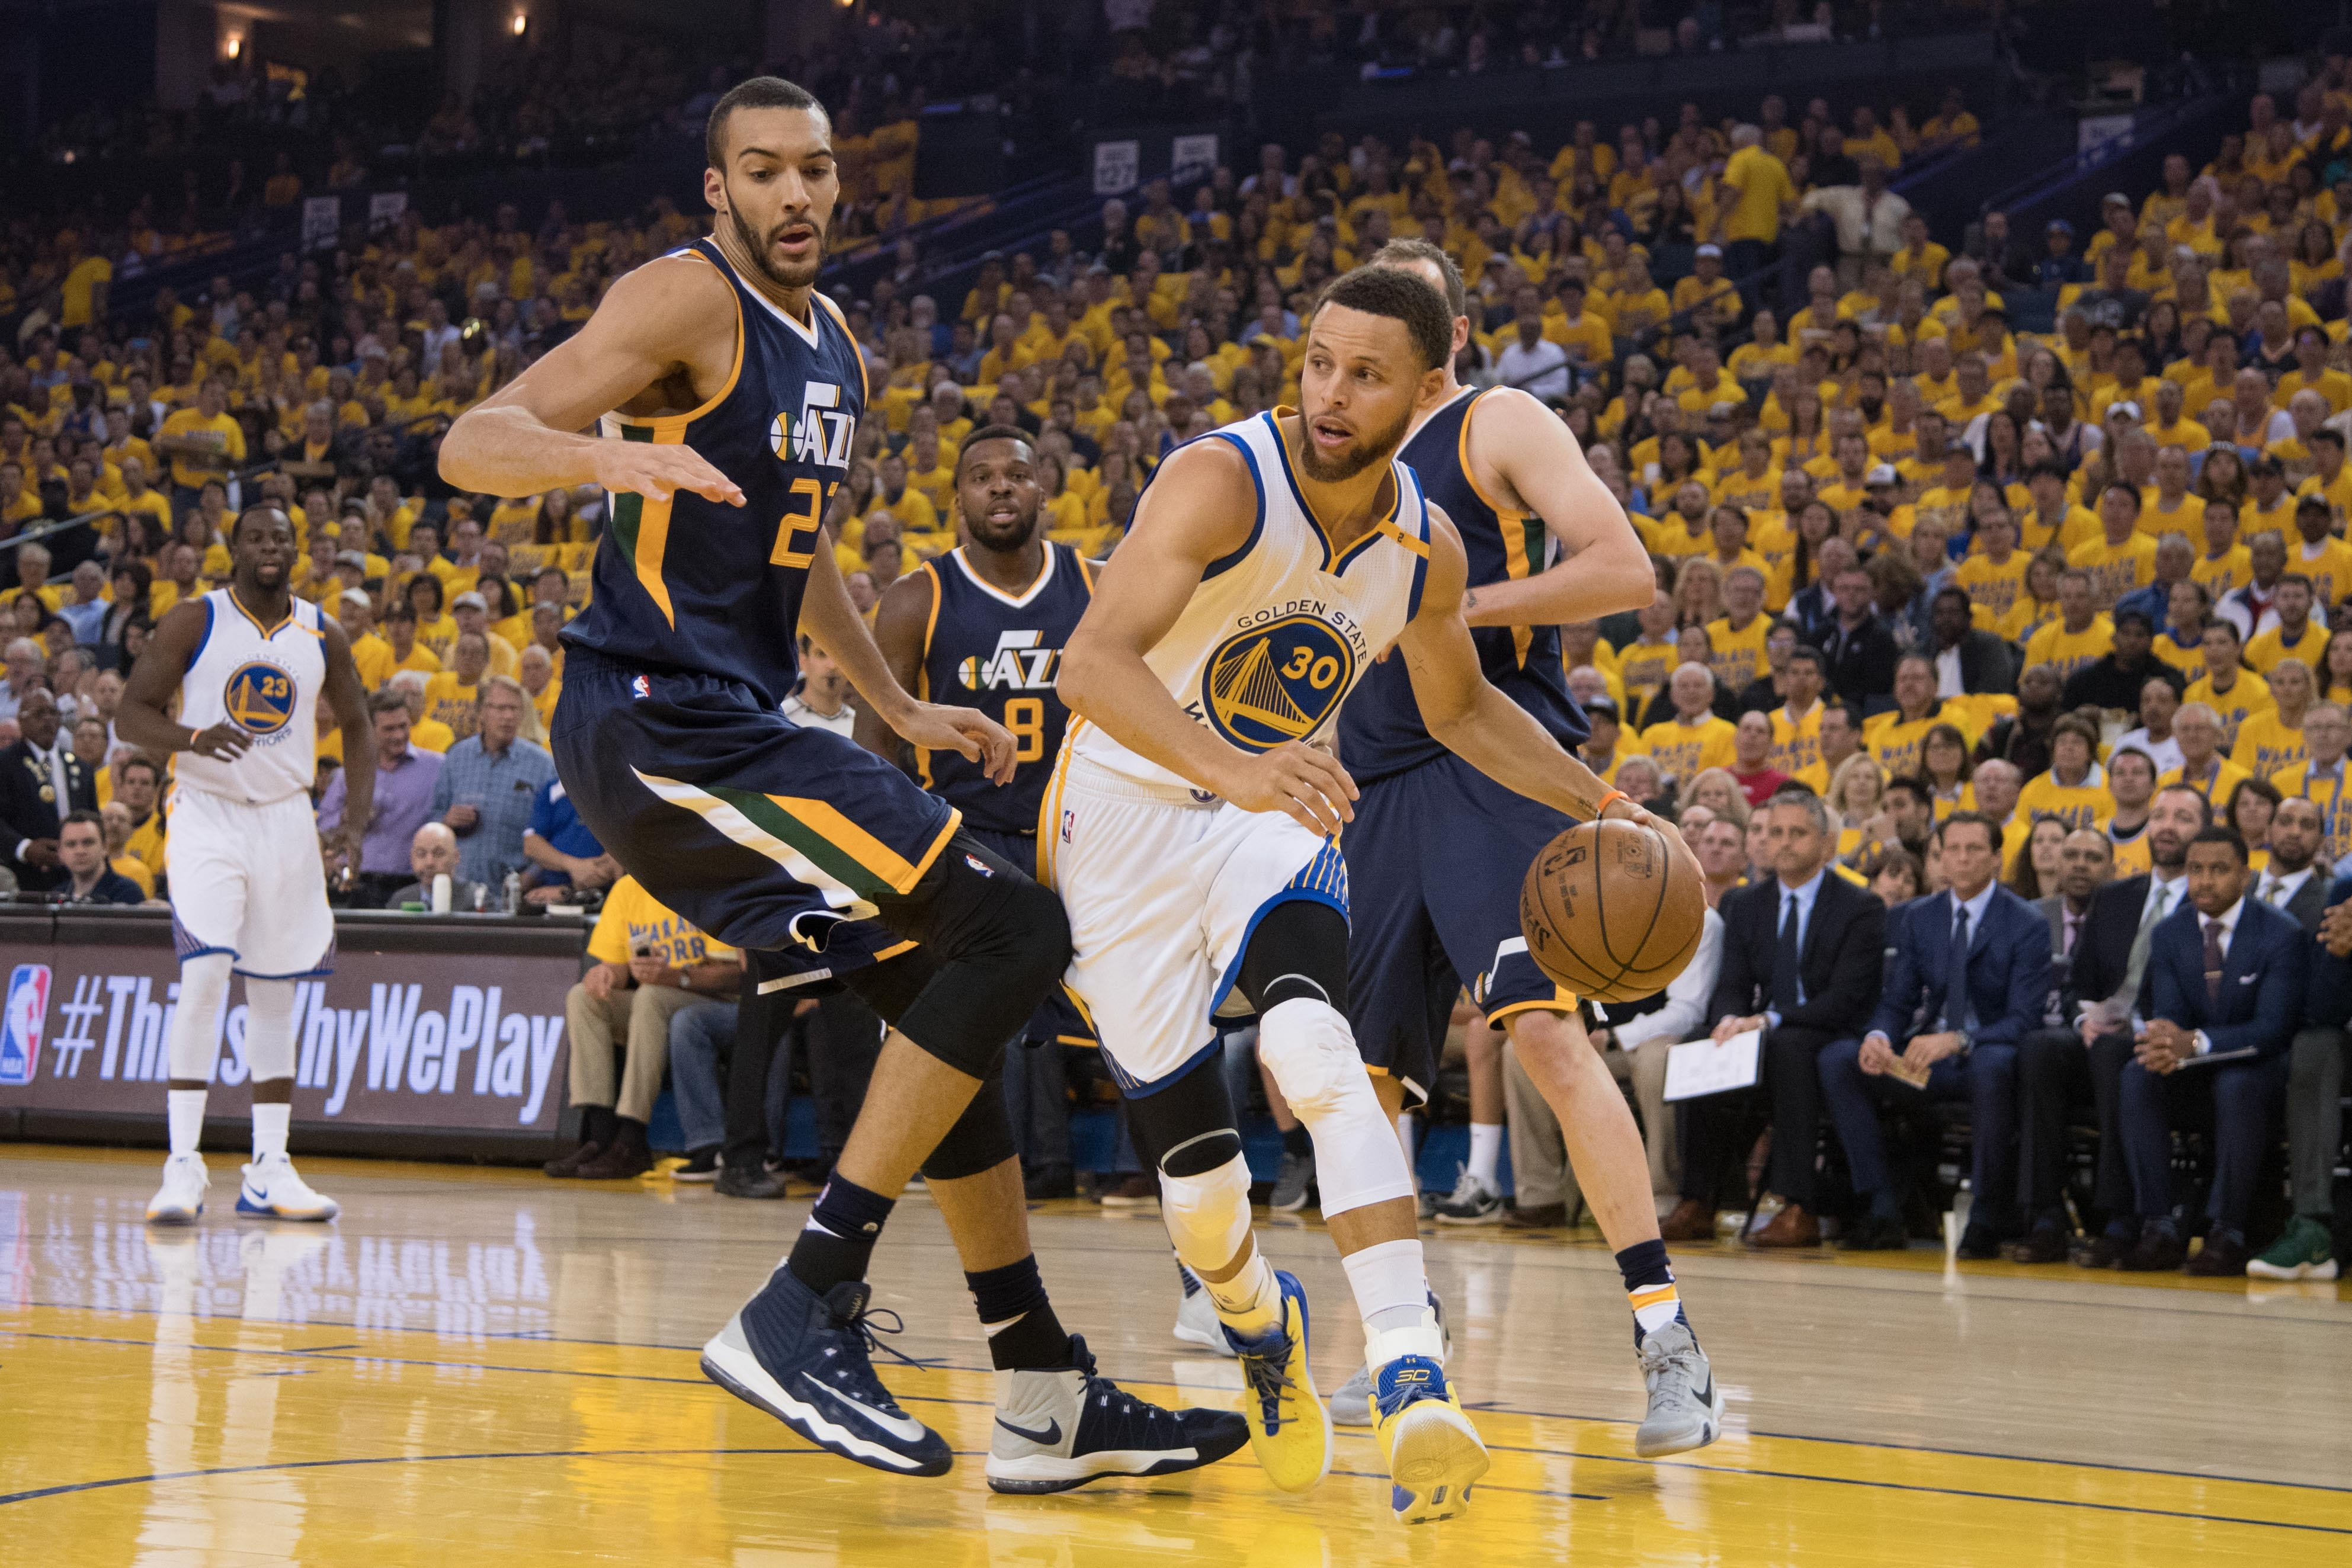 10050958-nba-playoffs-utah-jazz-at-golden-state-warriors